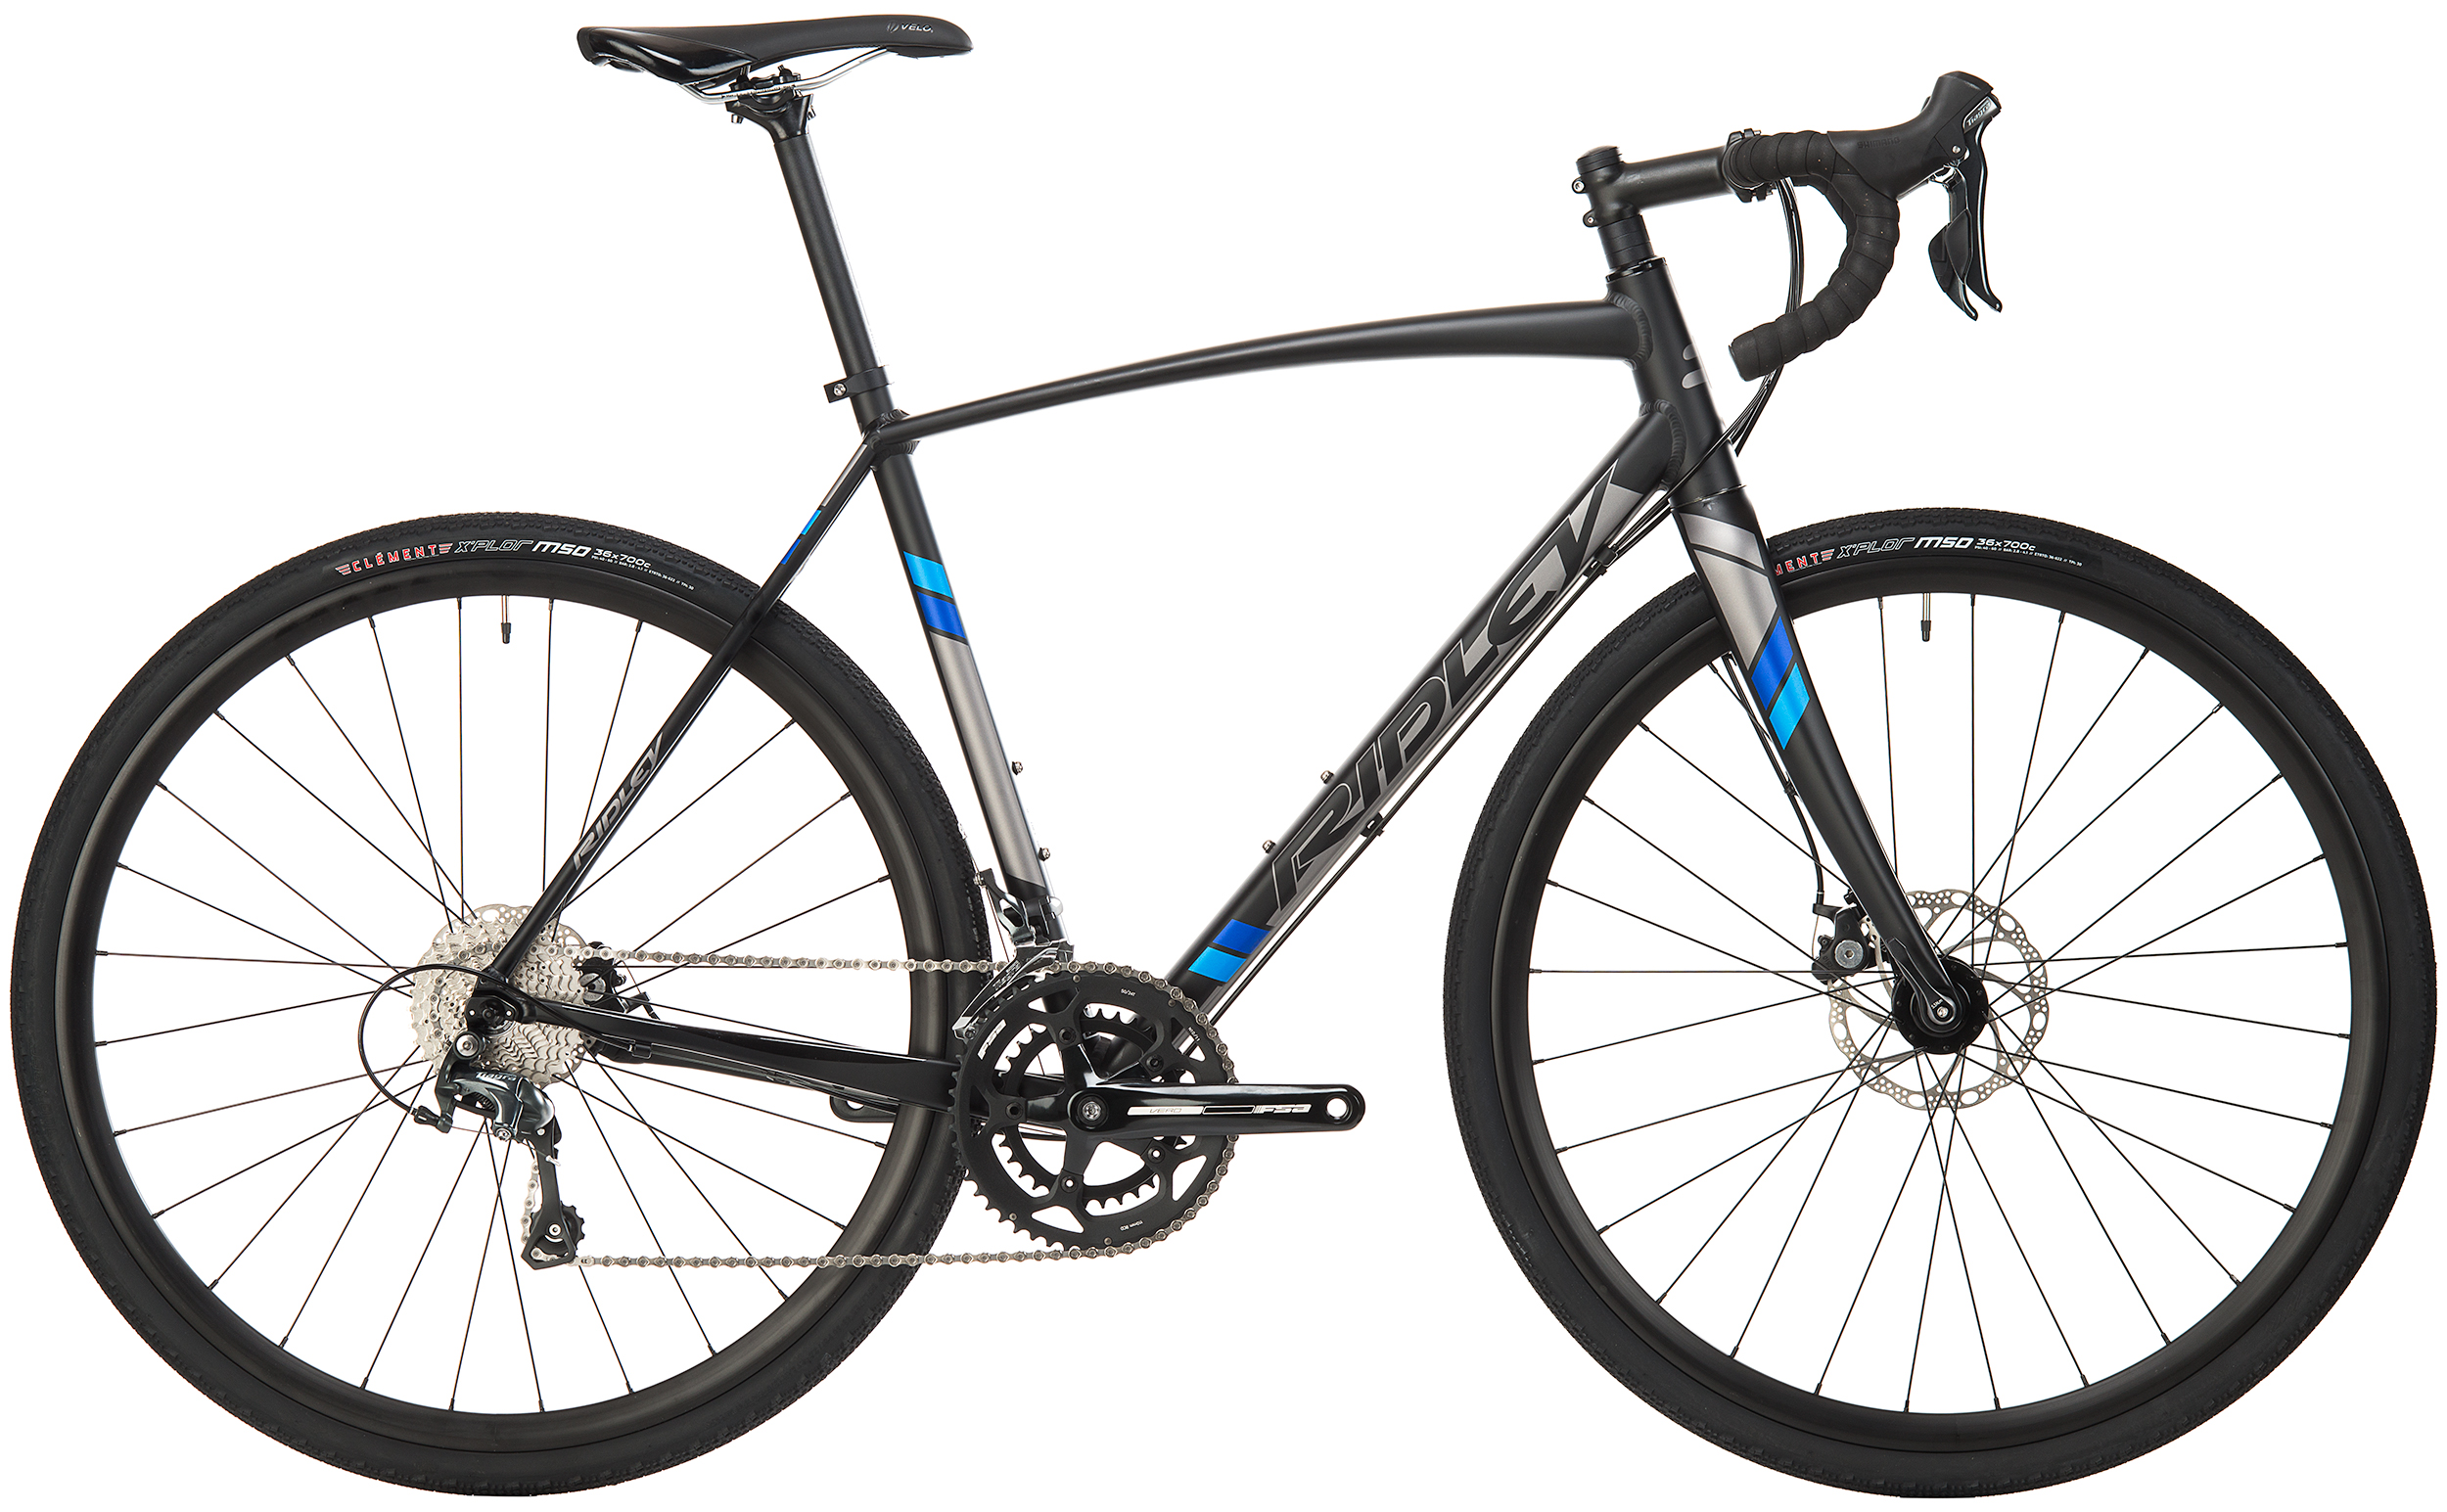 Ridley X Trail A60 Bicycle Unisex Mec